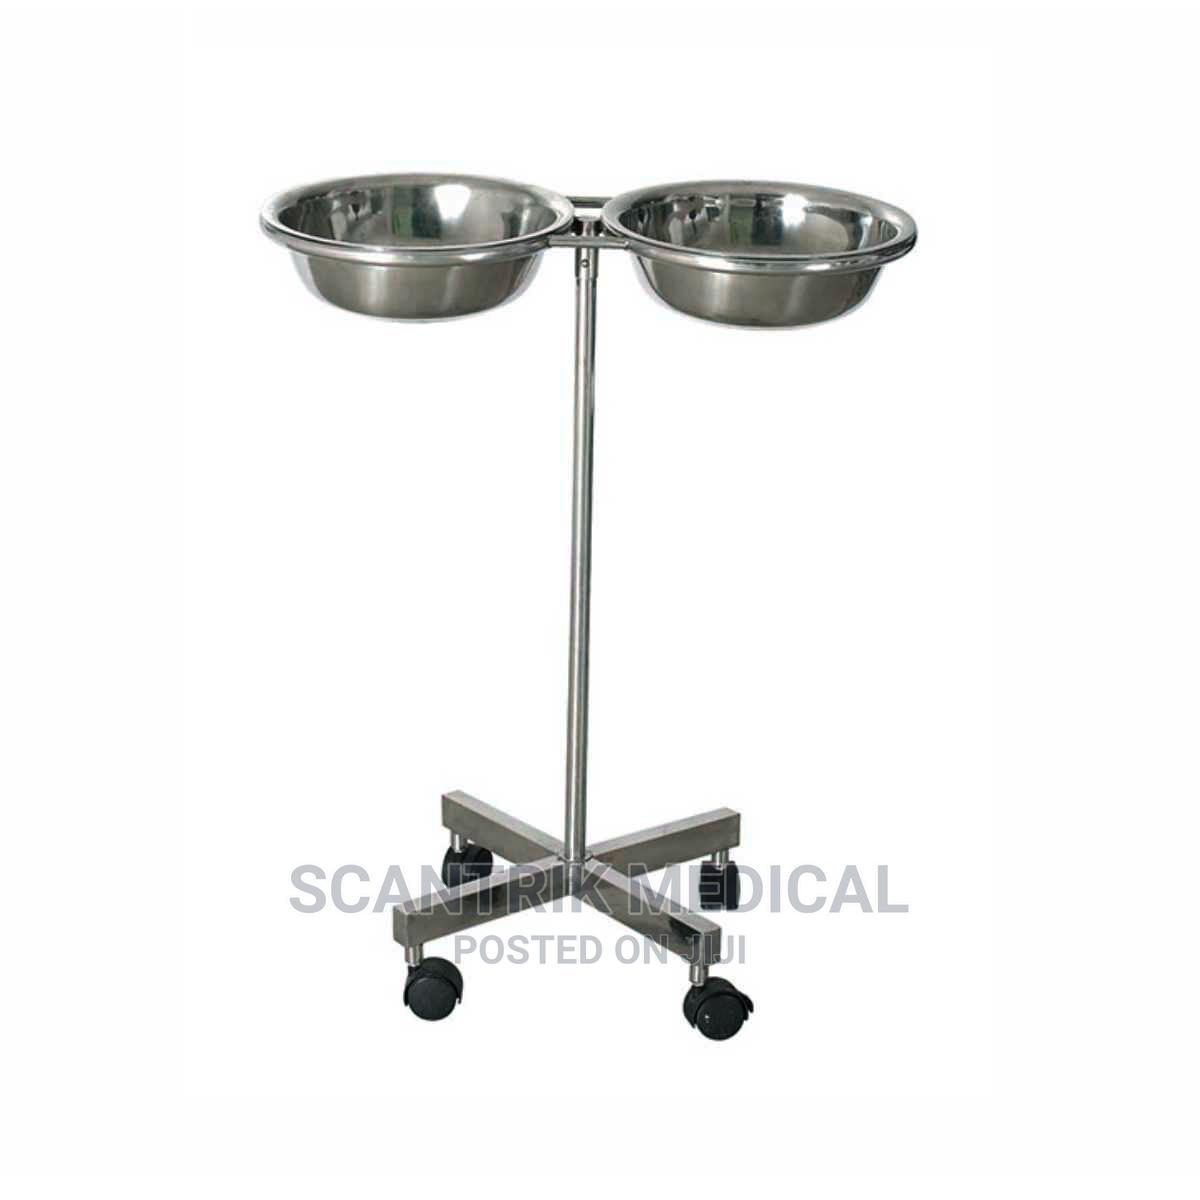 High Quality Basin Stand Hospital Bowl Stand Wash Hand Stand